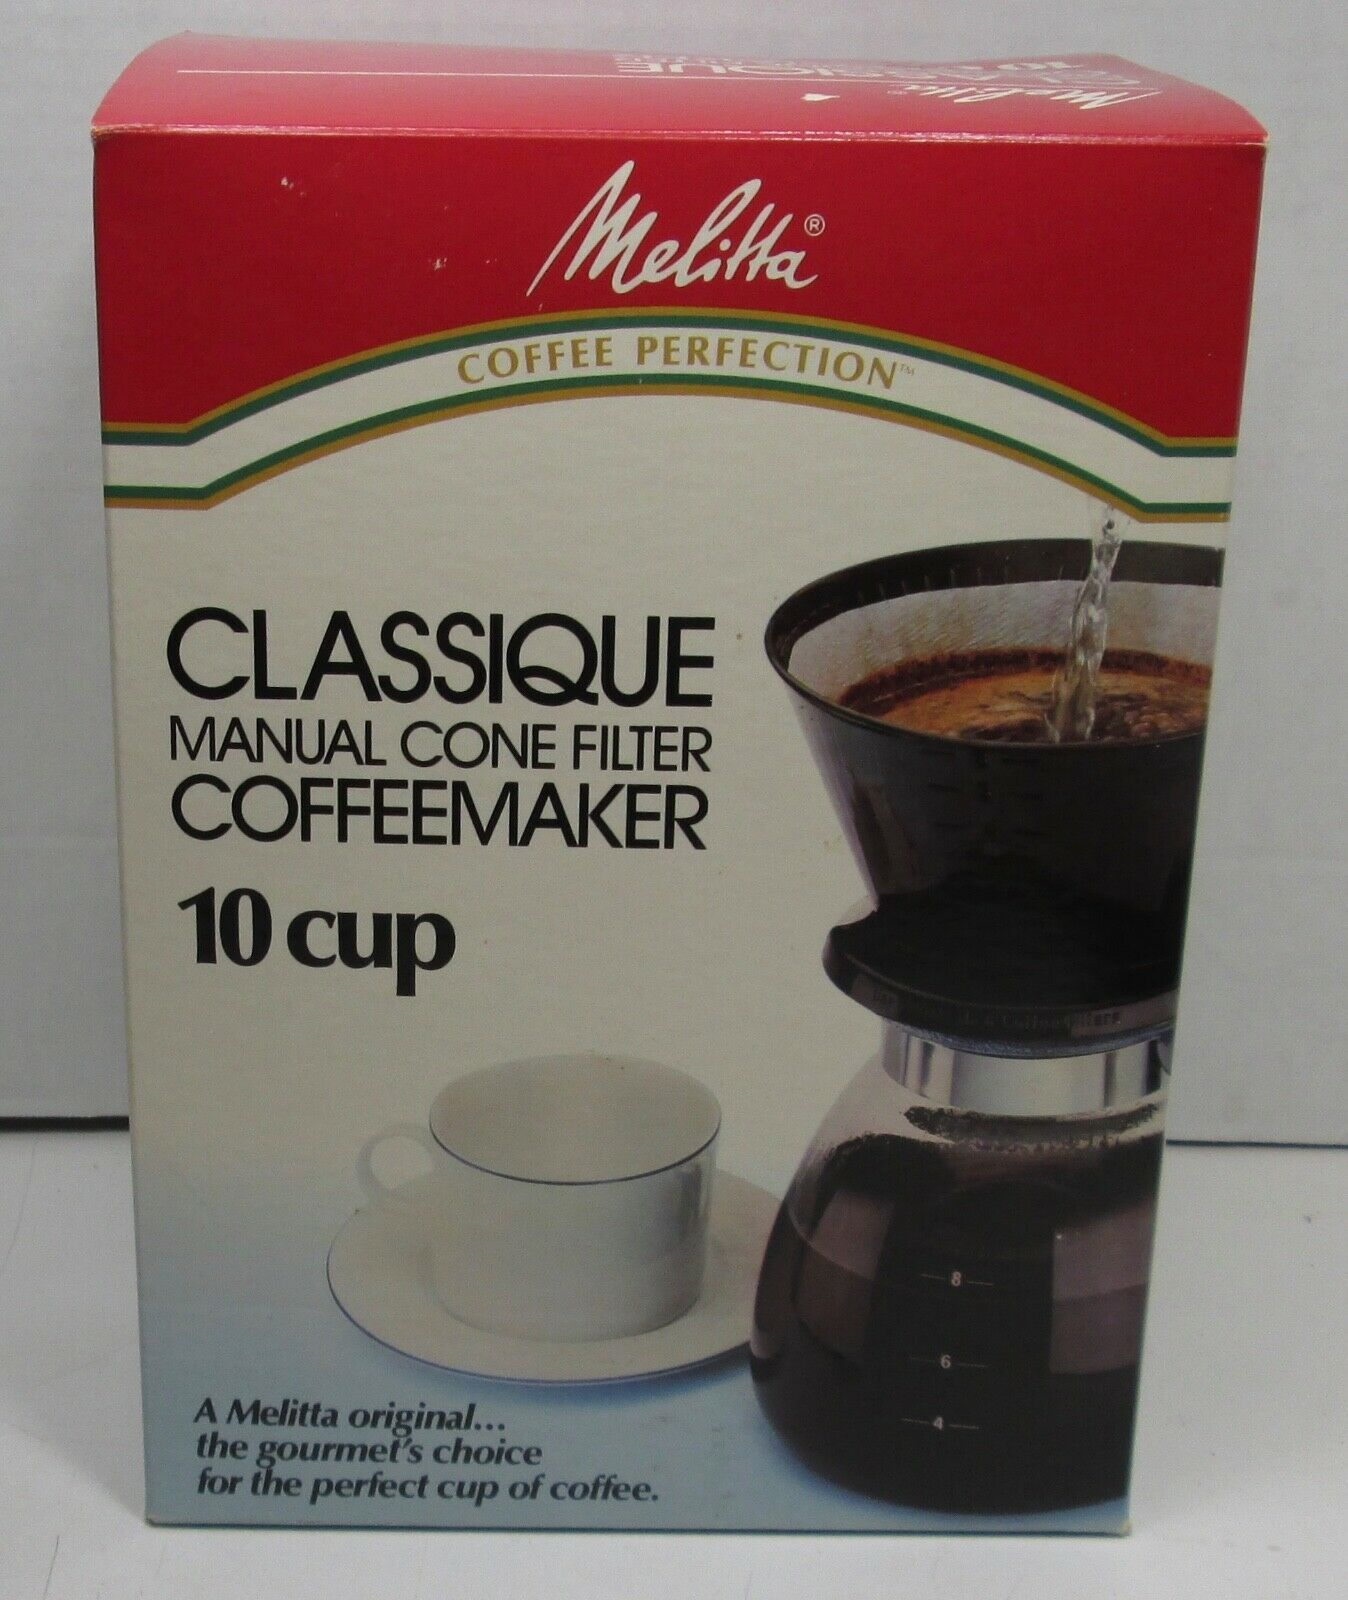 Melitta Coffee Perfection Cone Filter Coffeemaker 10 Cup - New - $28.49